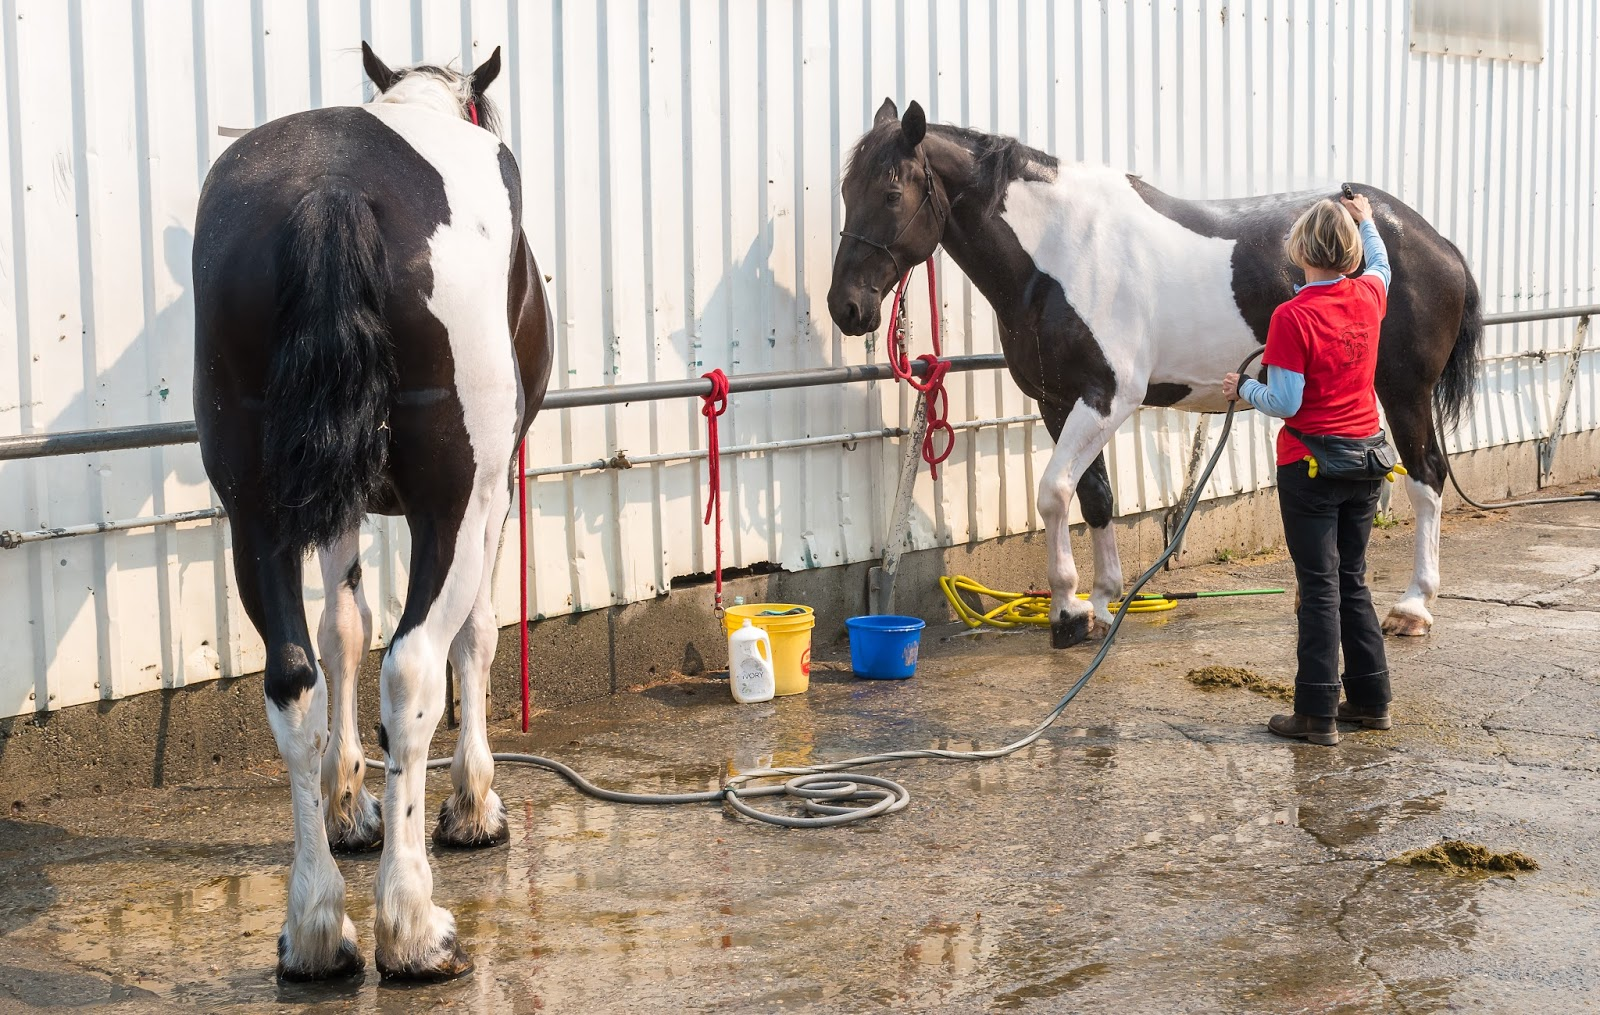 Watch How to Vaccinate Horses video